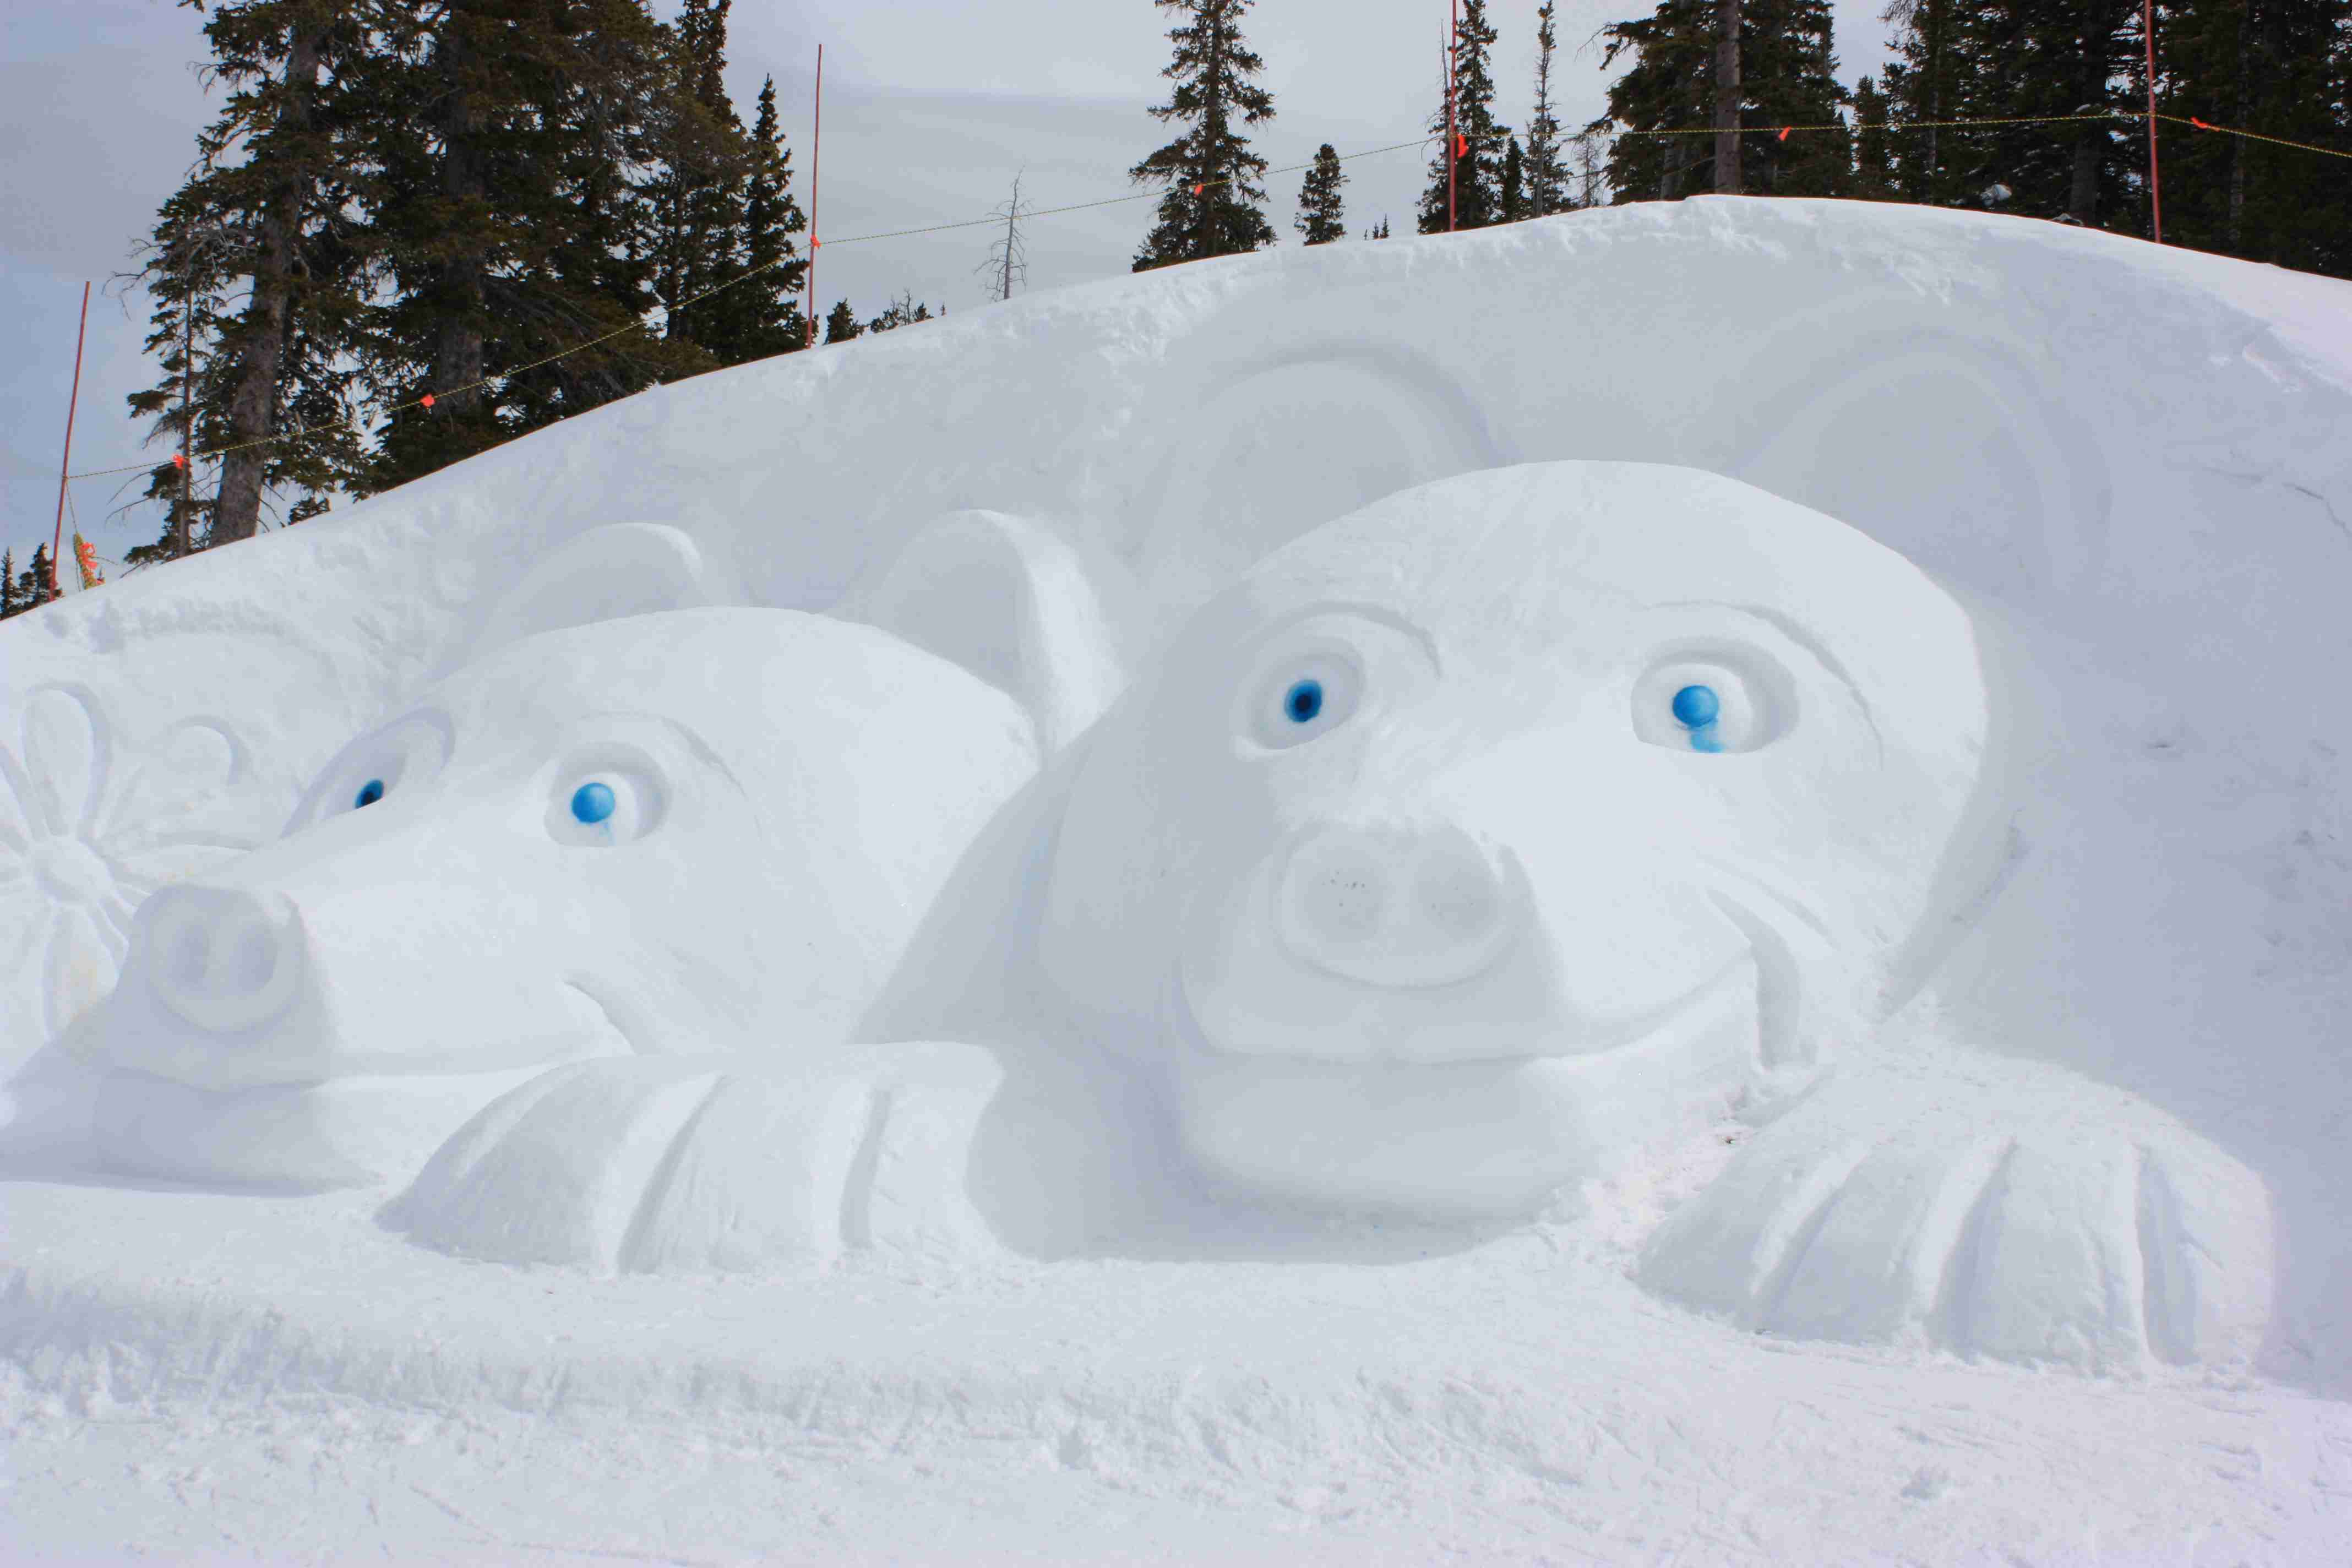 Beaver creek snow art bears